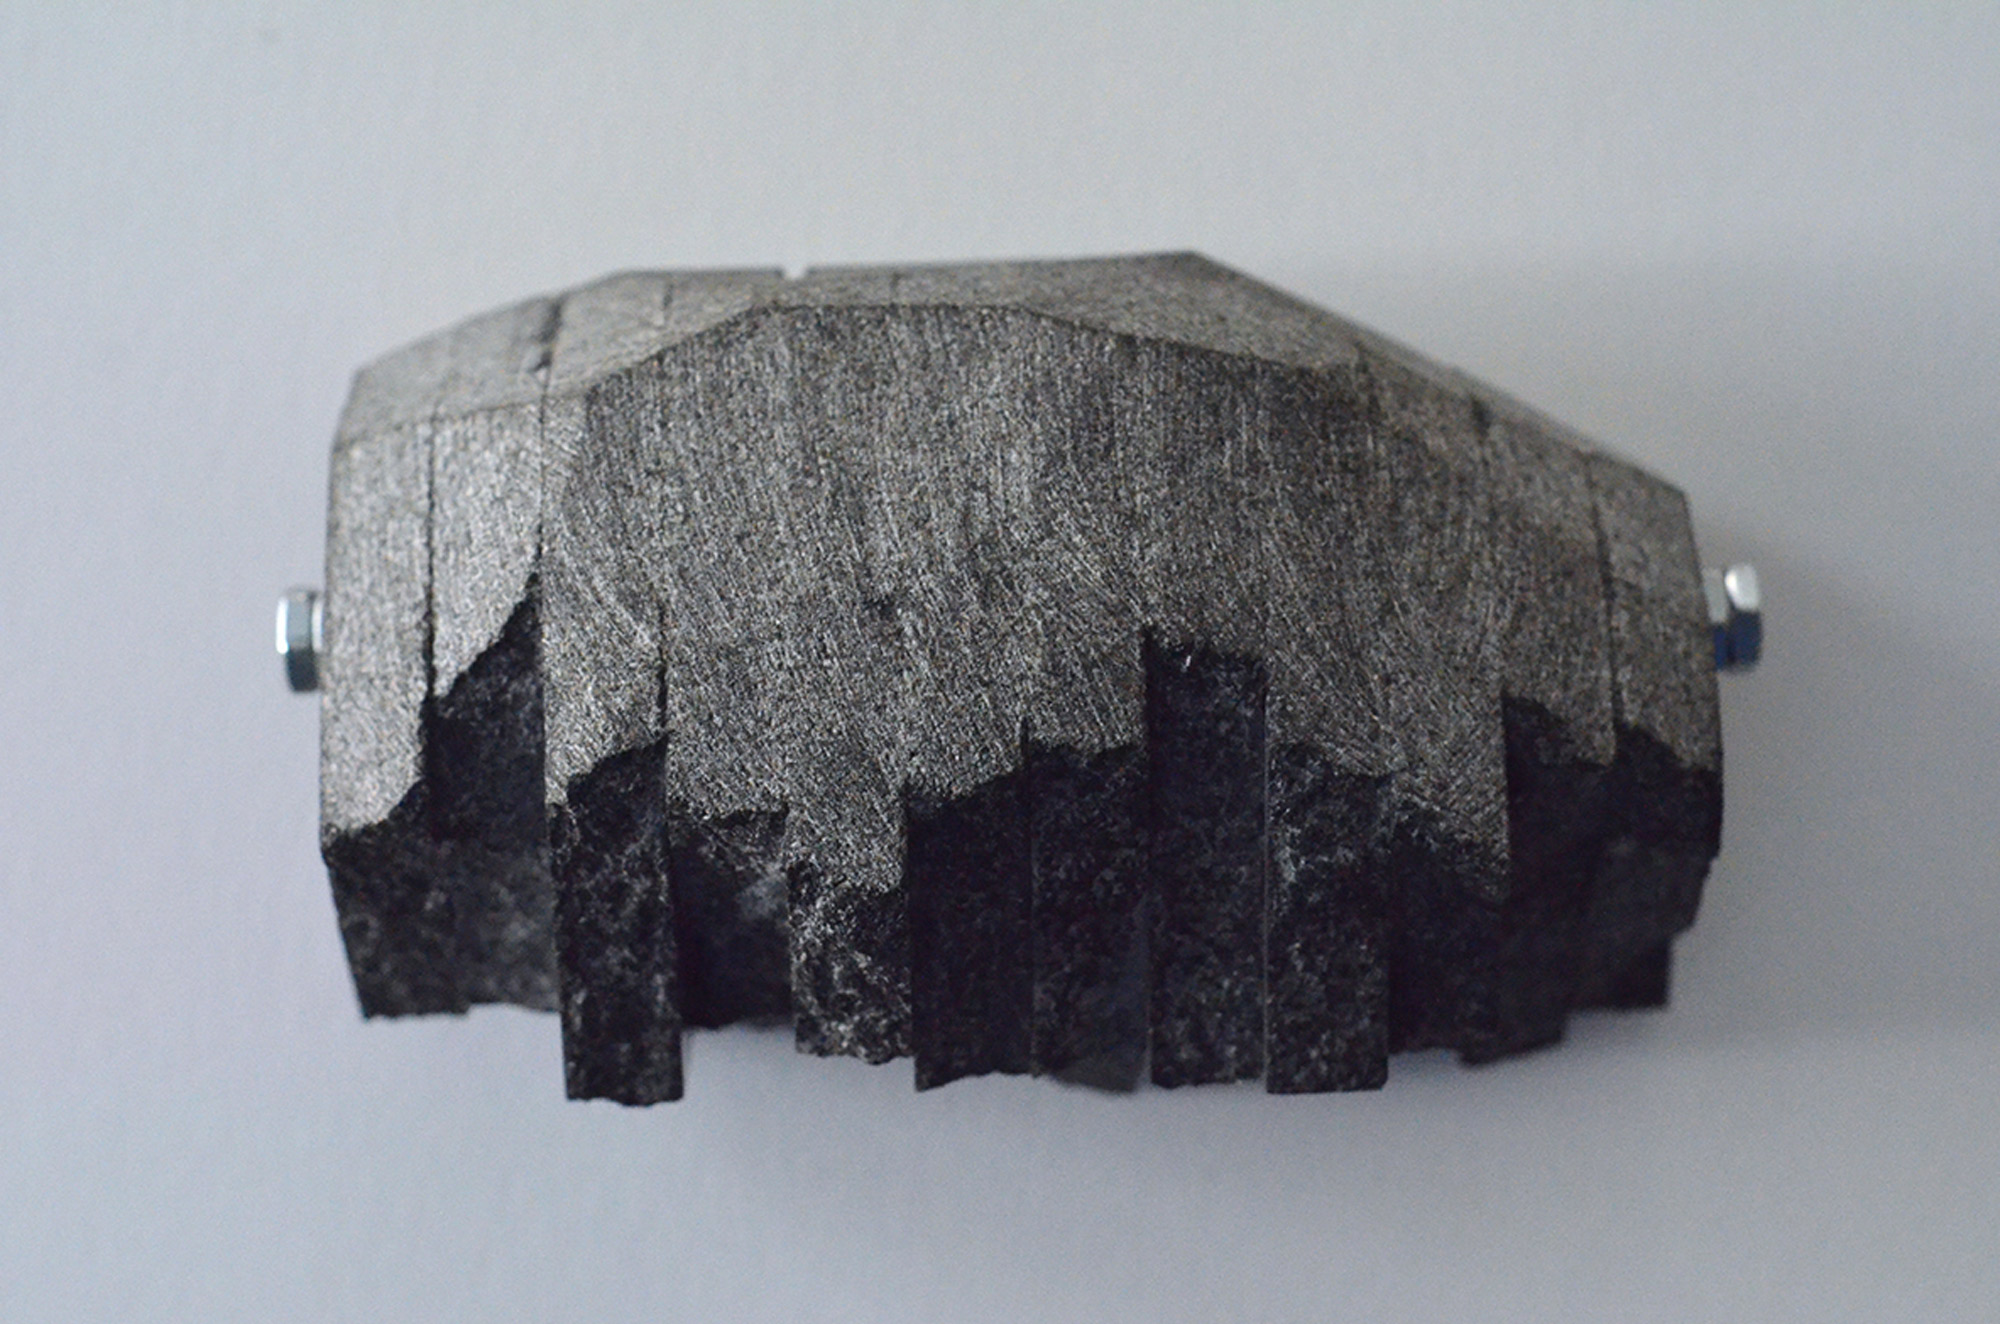 IMPLEMENTS-FOR-FUTURE-GLACIAL-SCOURING---RECONSTRUCTED-GRANITE-BOULDER-(2016).jpg